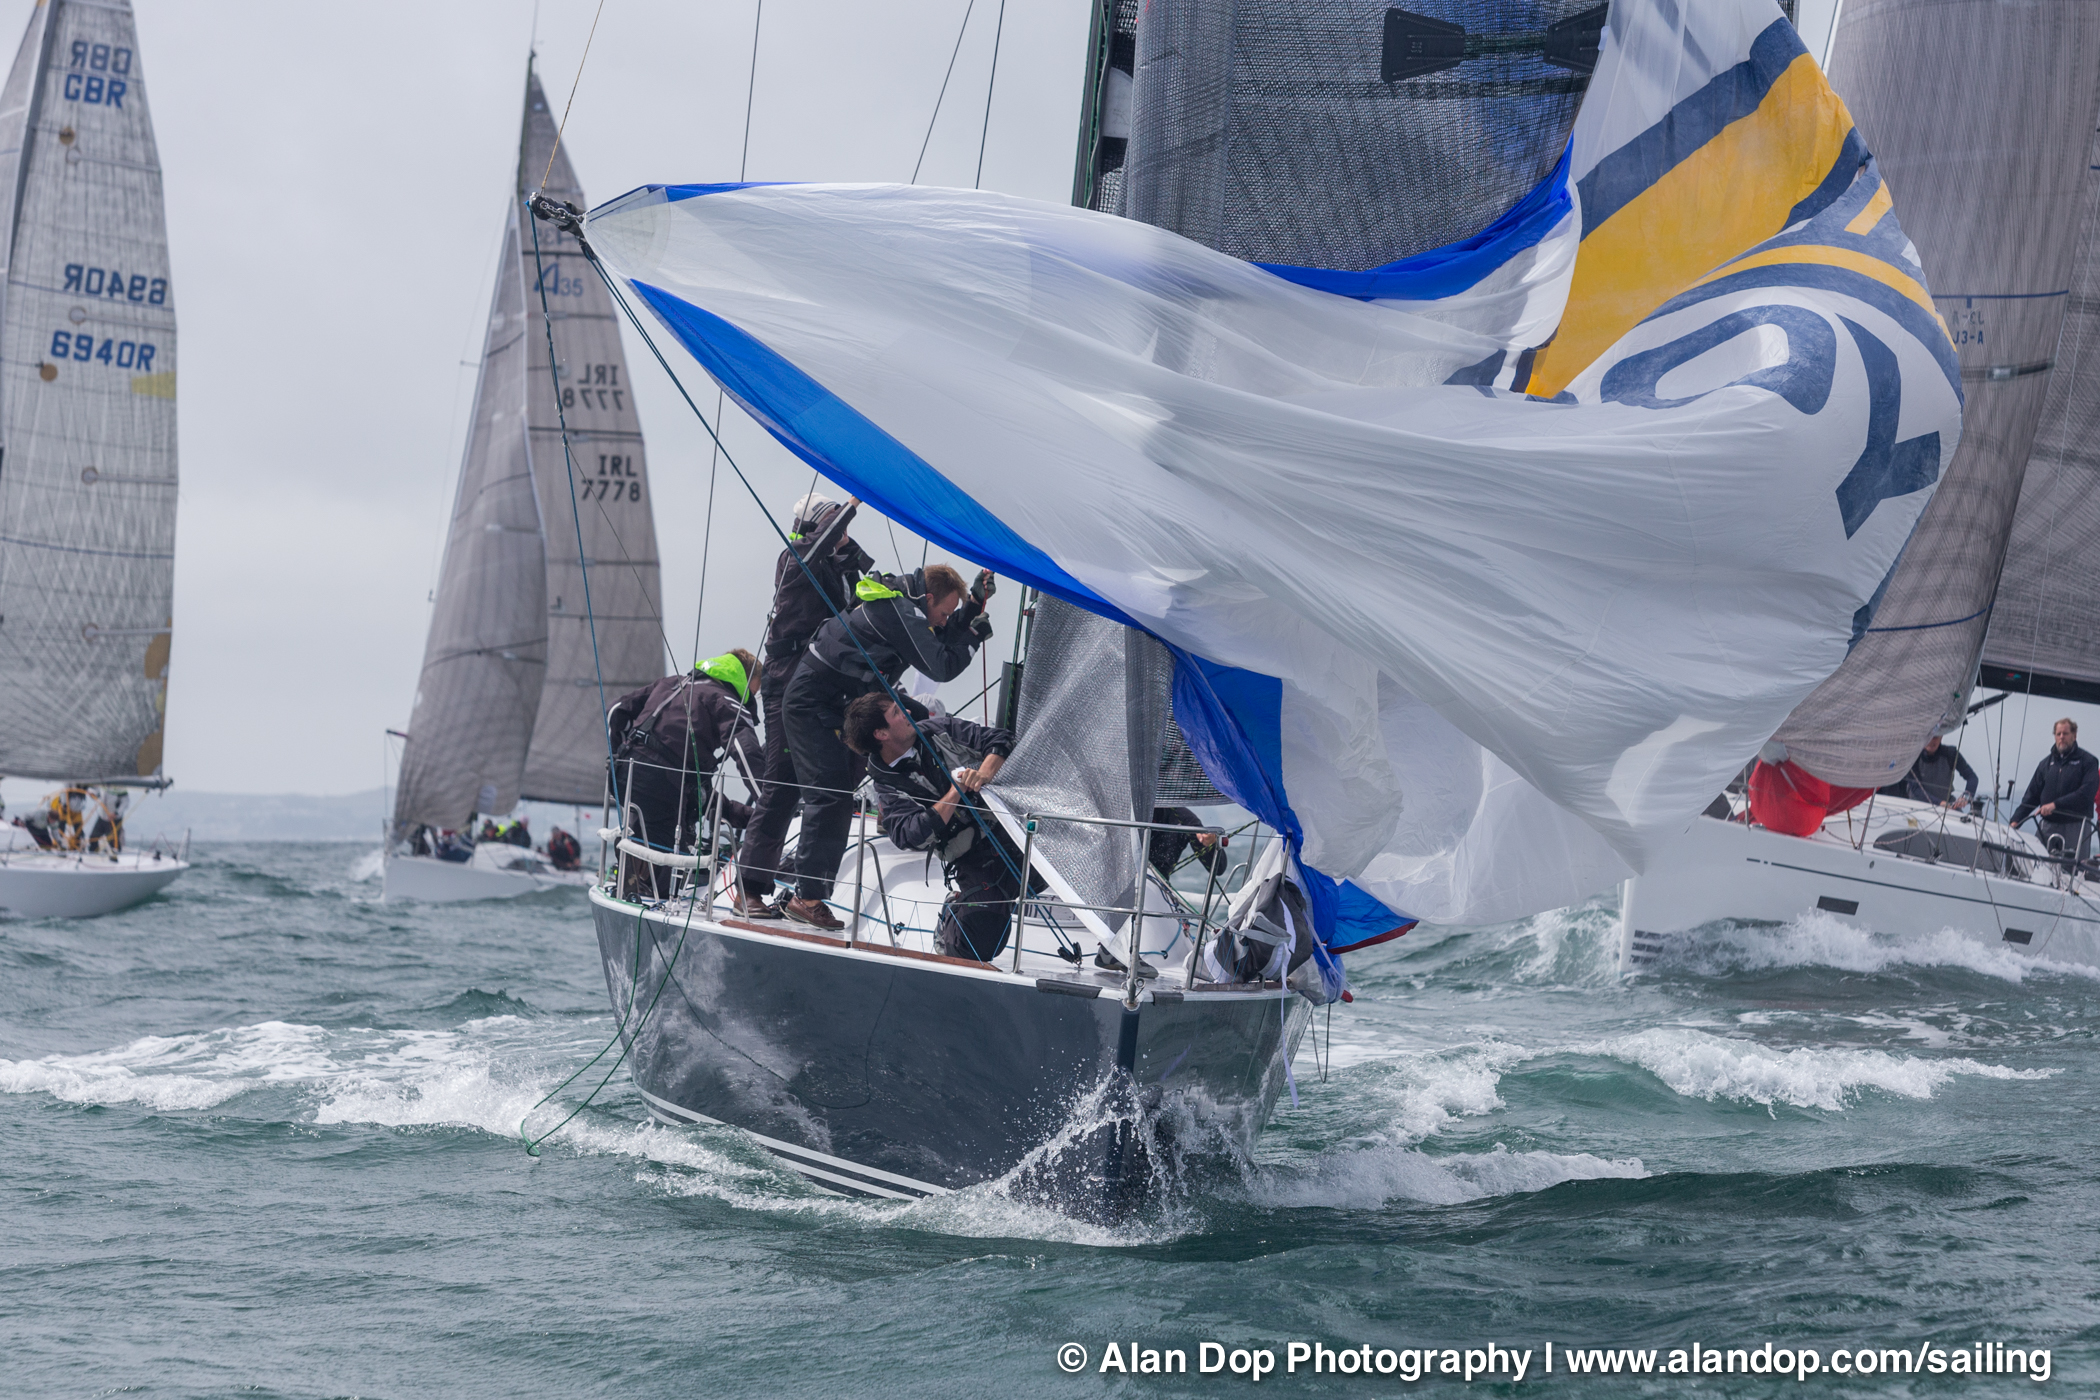 Constructive New Abs Led Light Electronic Navigation Compass Fit For Marine Boat Sail Ship Vehicle Car Confirming Navigation Directions Harmonious Colors Atv,rv,boat & Other Vehicle Automobiles & Motorcycles